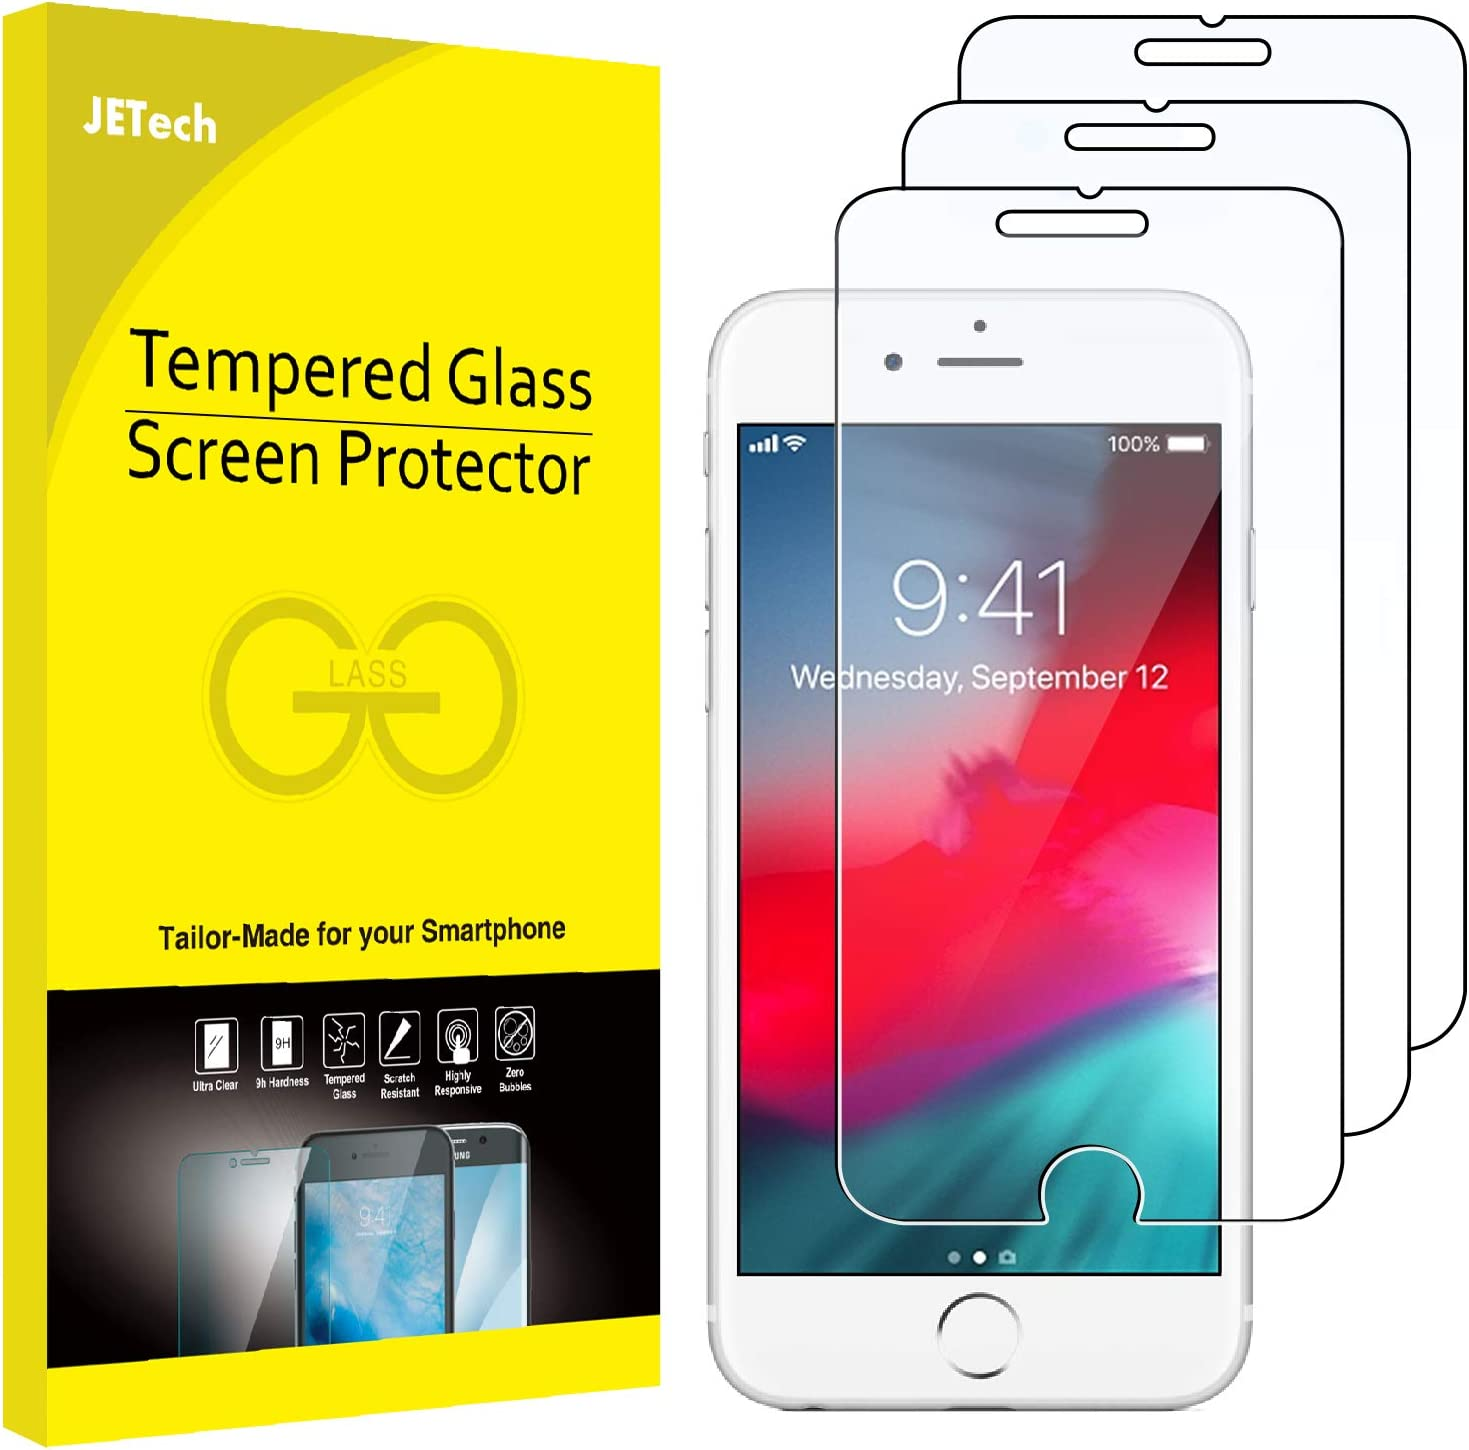 Amazon Com Jetech 3 Pack Screen Protector For Iphone 8 Plus Iphone 7 Plus Iphone 6s Plus And Iphone 6 Plus Tempered Glass Film 5 5 Inch